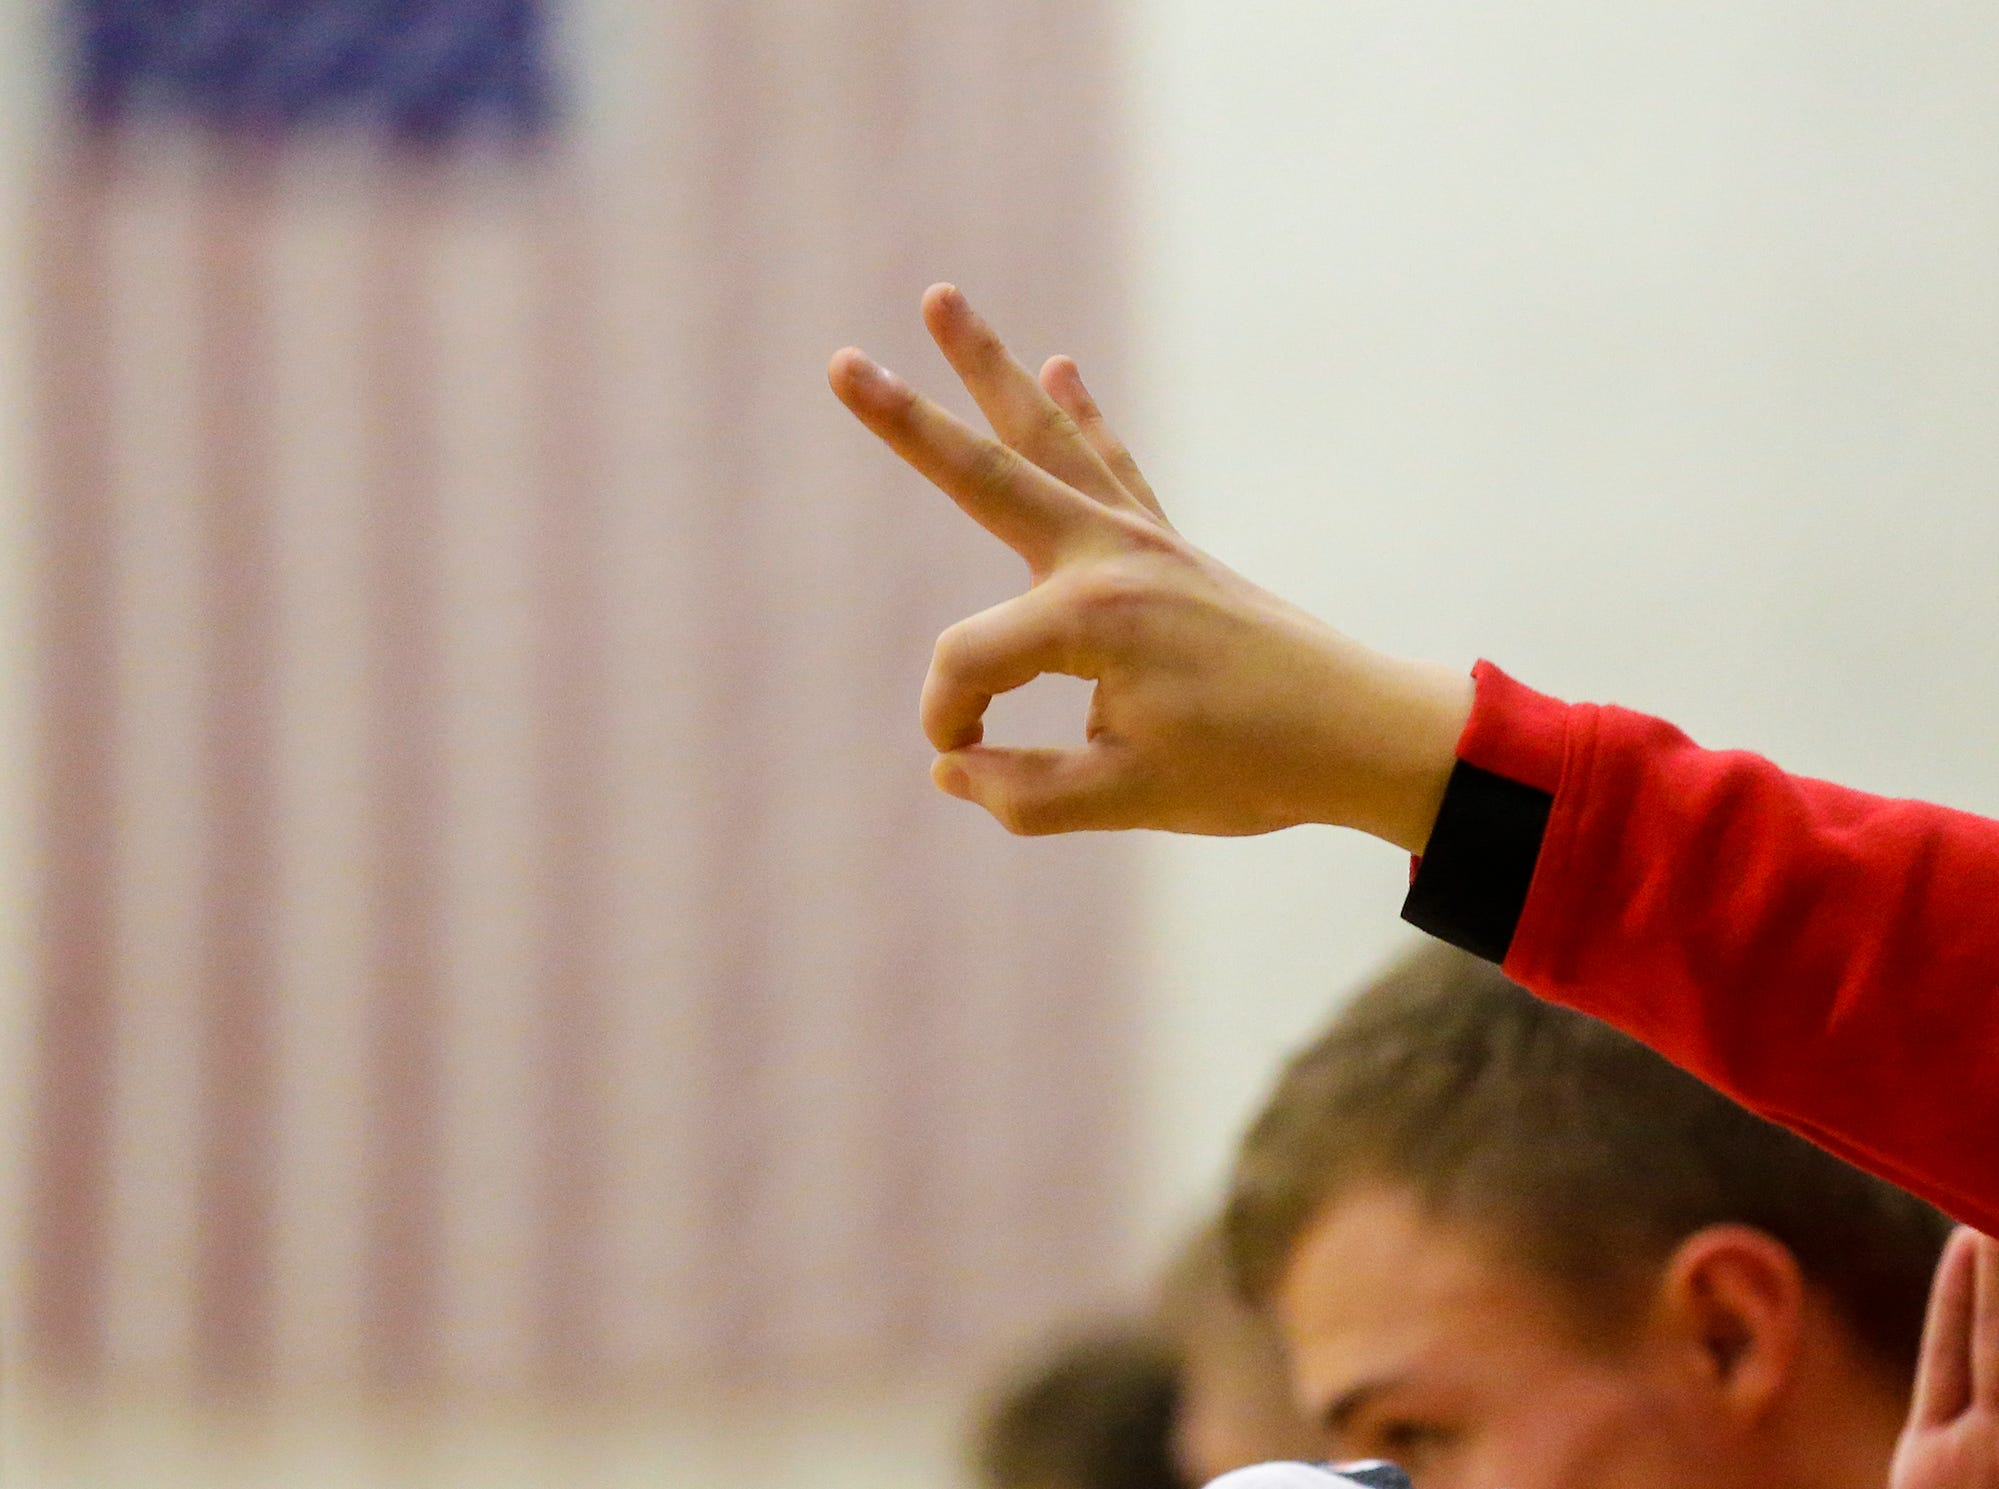 A Lourdes Academy boys basketball player puts up three fingers after a player makes a three point basket against Oakfield High School during their game Thursday, January 24, 2019 in Oakfield. Lourdes Academy won the game 83-48. Doug Raflik/USA TODAY NETWORK-Wisconsin